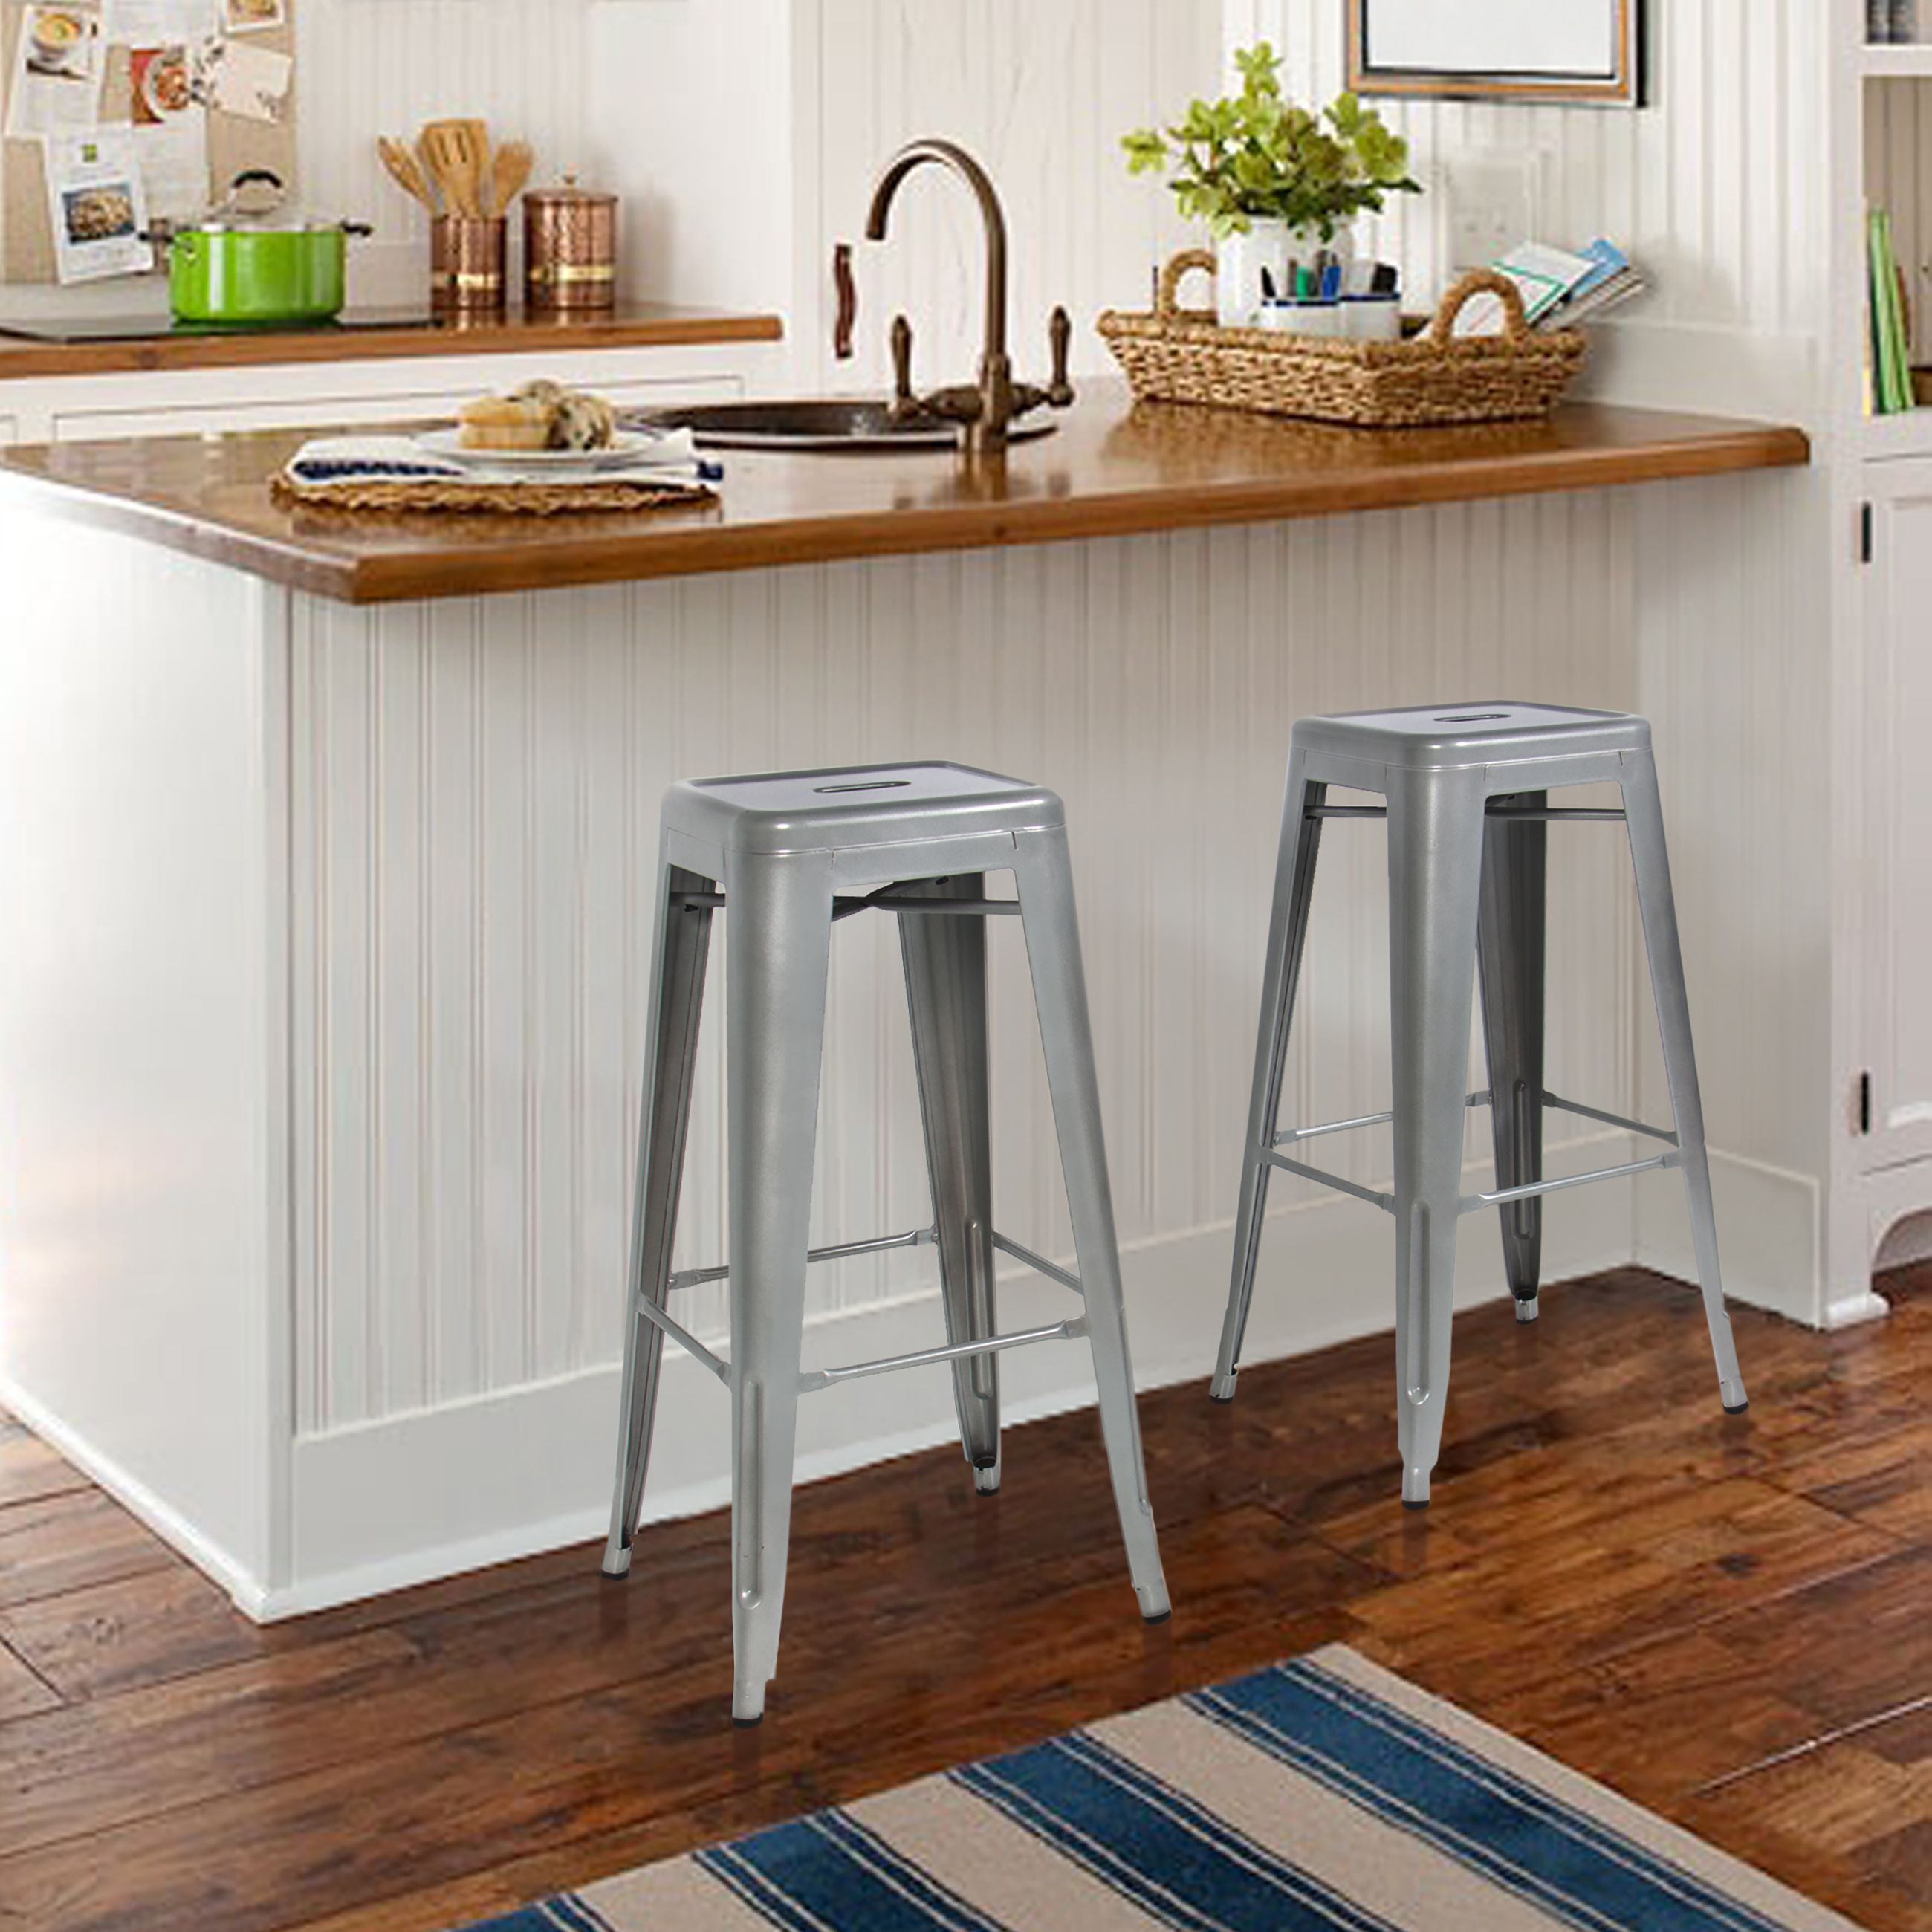 Best Choice Products Metal Bar Stools Set Of 2 Vintage Antique Style Counter Stool Modern French Silver These Are Made Sy Steel This